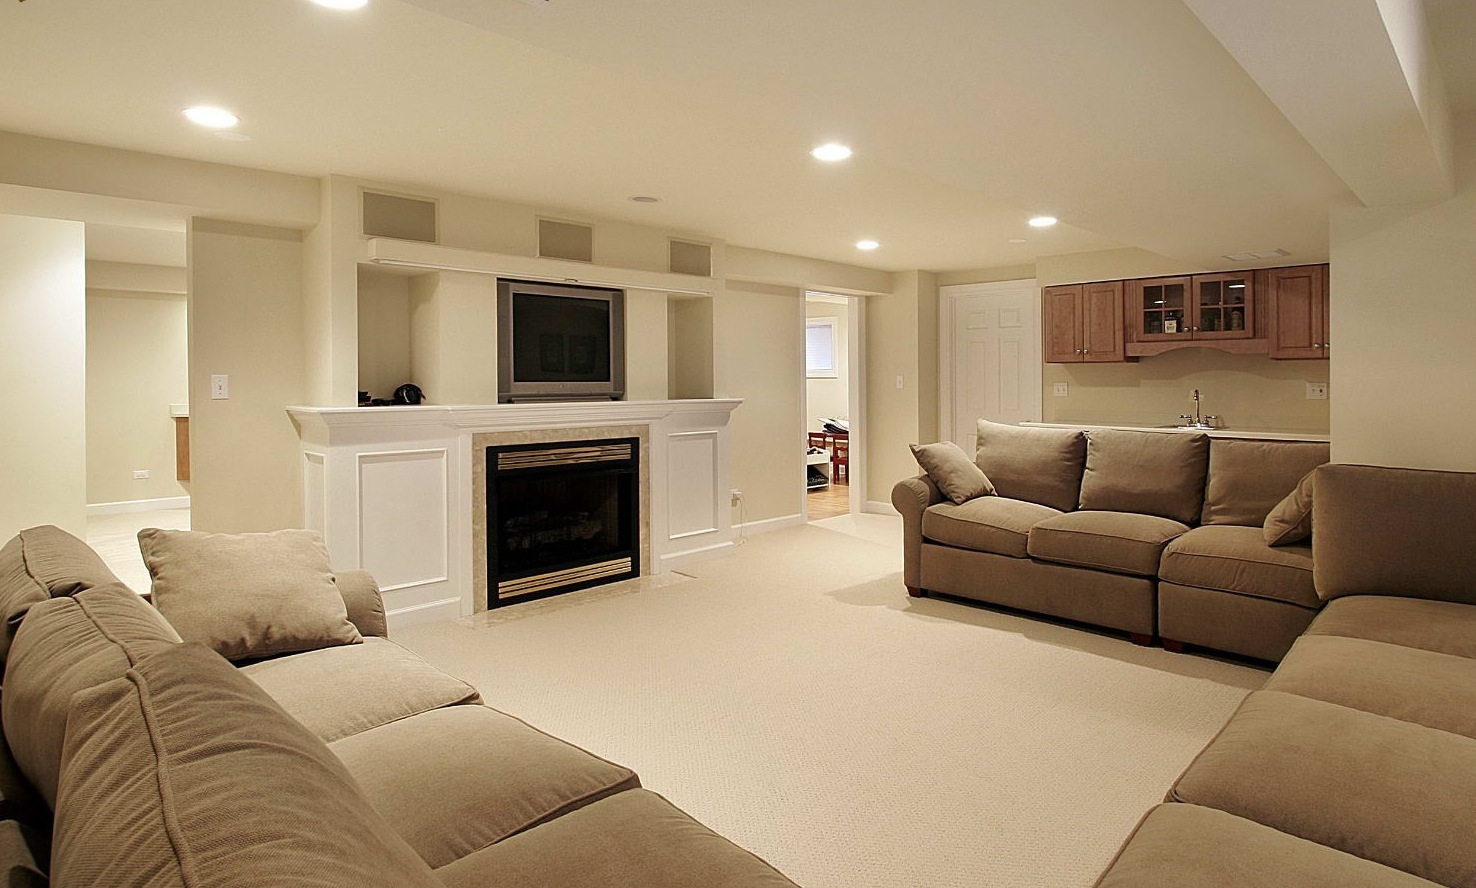 basement design ideas. basement design ideas e